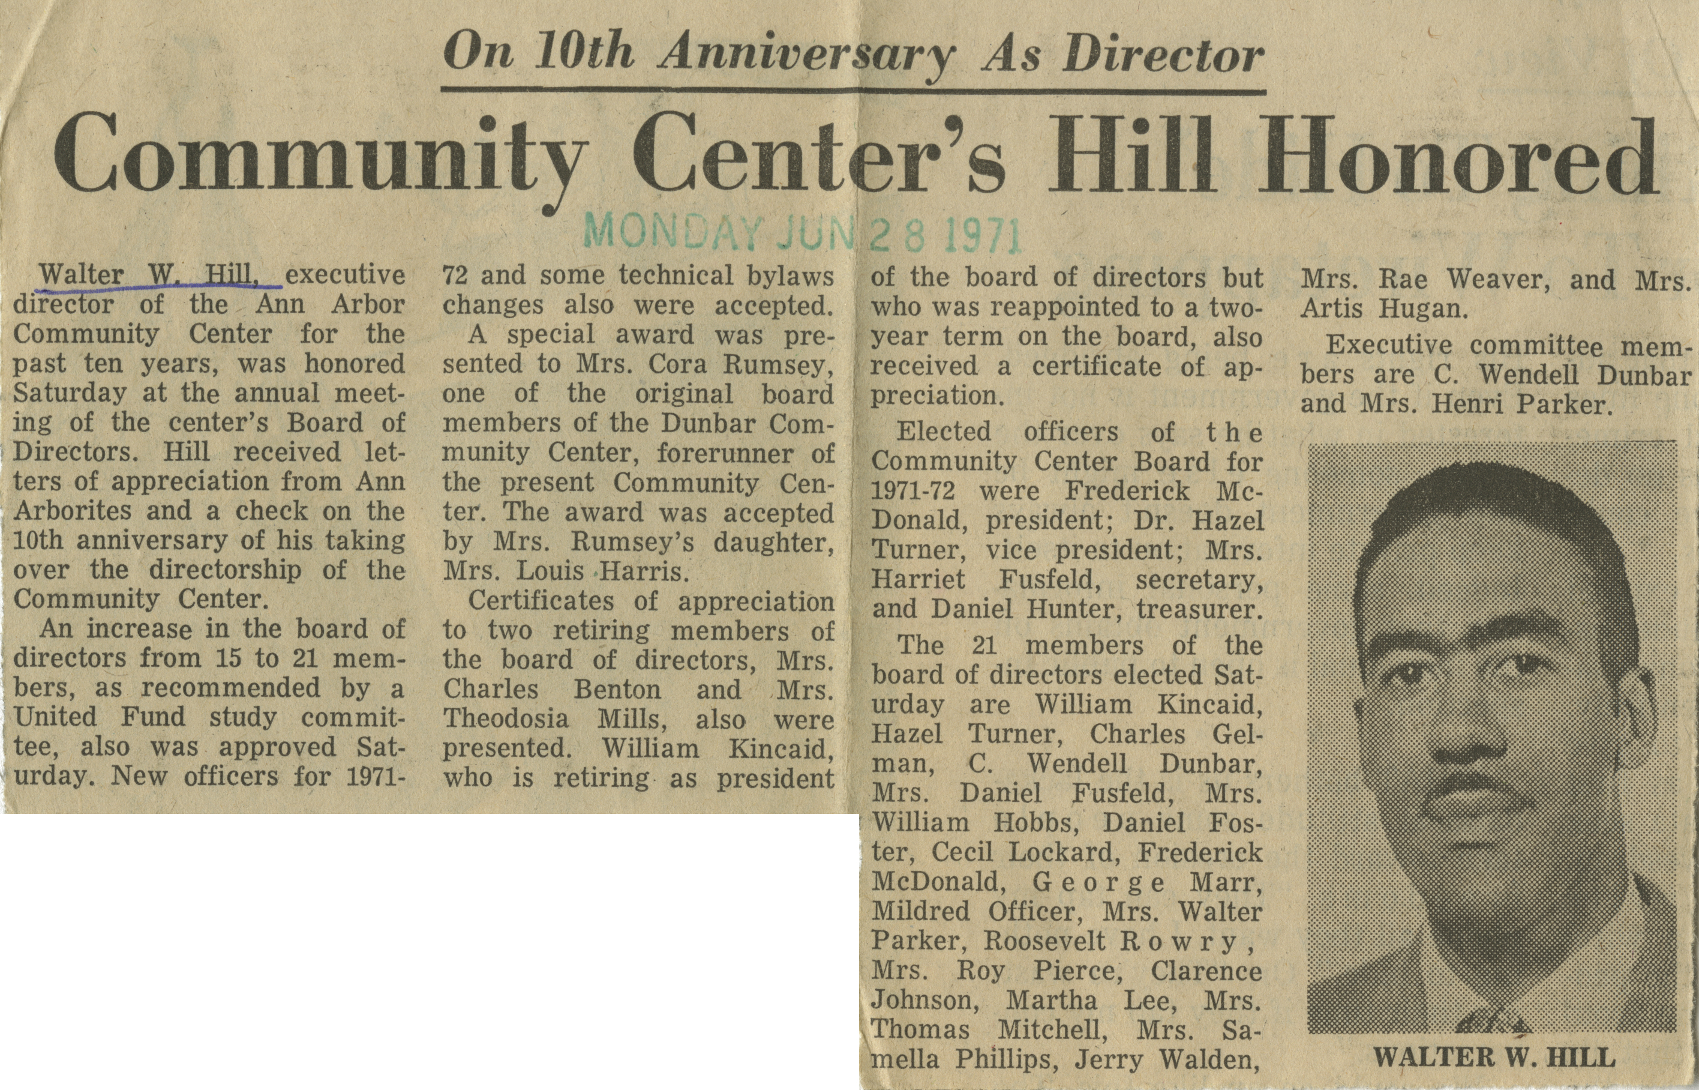 Community Center's Hill Honored image